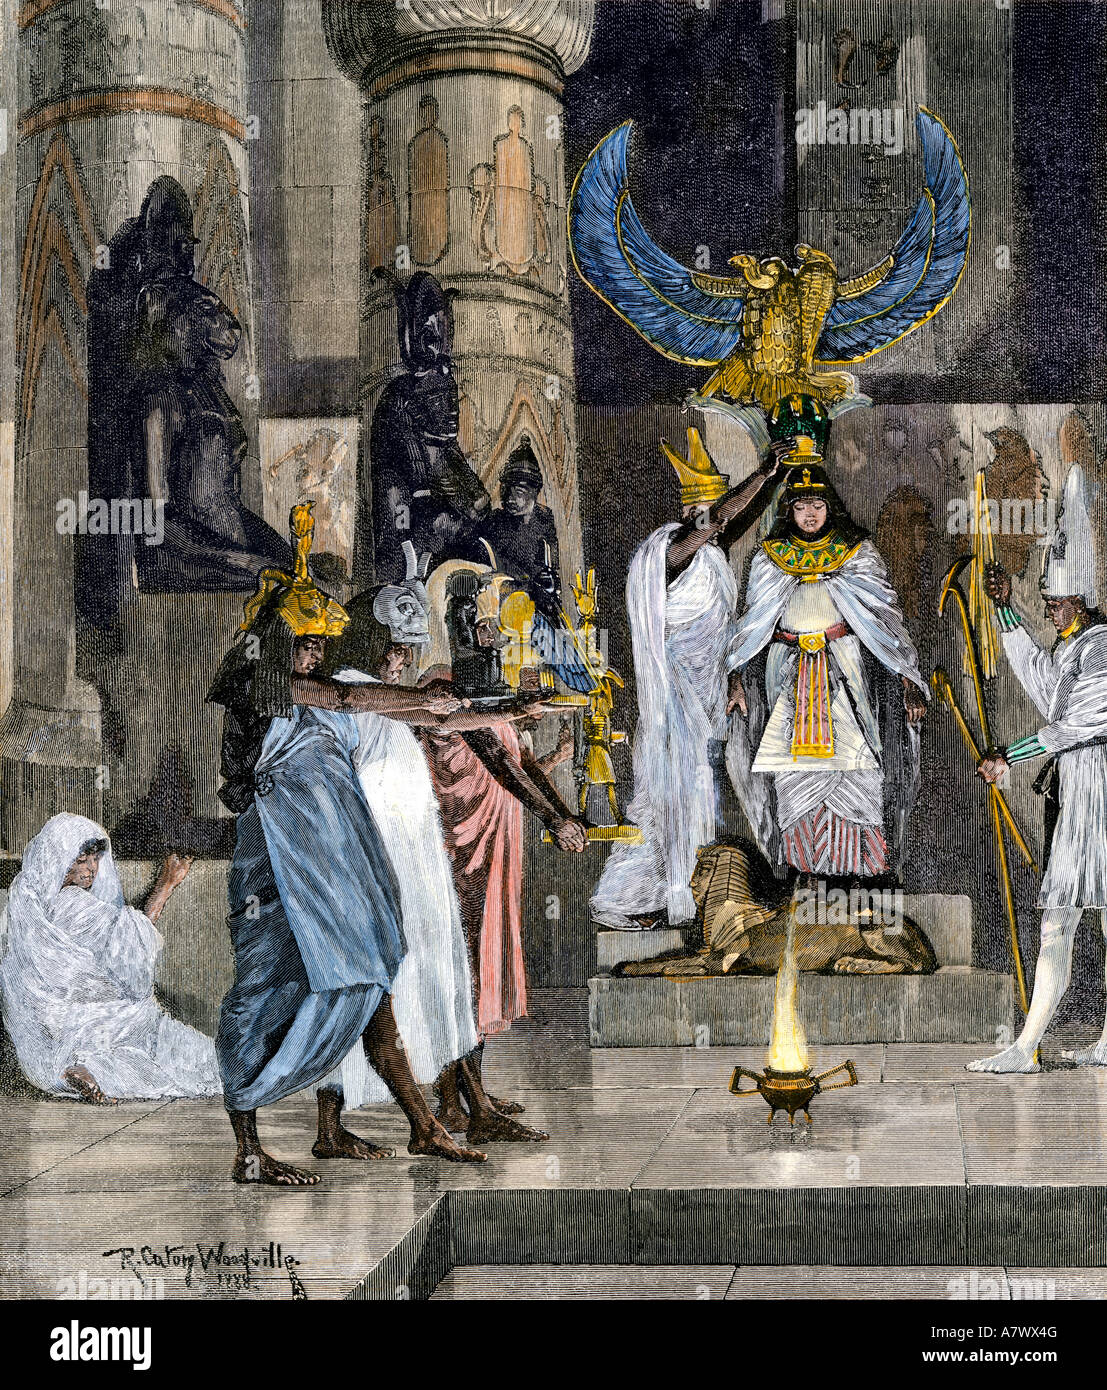 Coronation of a female pharaoh in ancient Egypt. Hand-colored woodcut - Stock Image